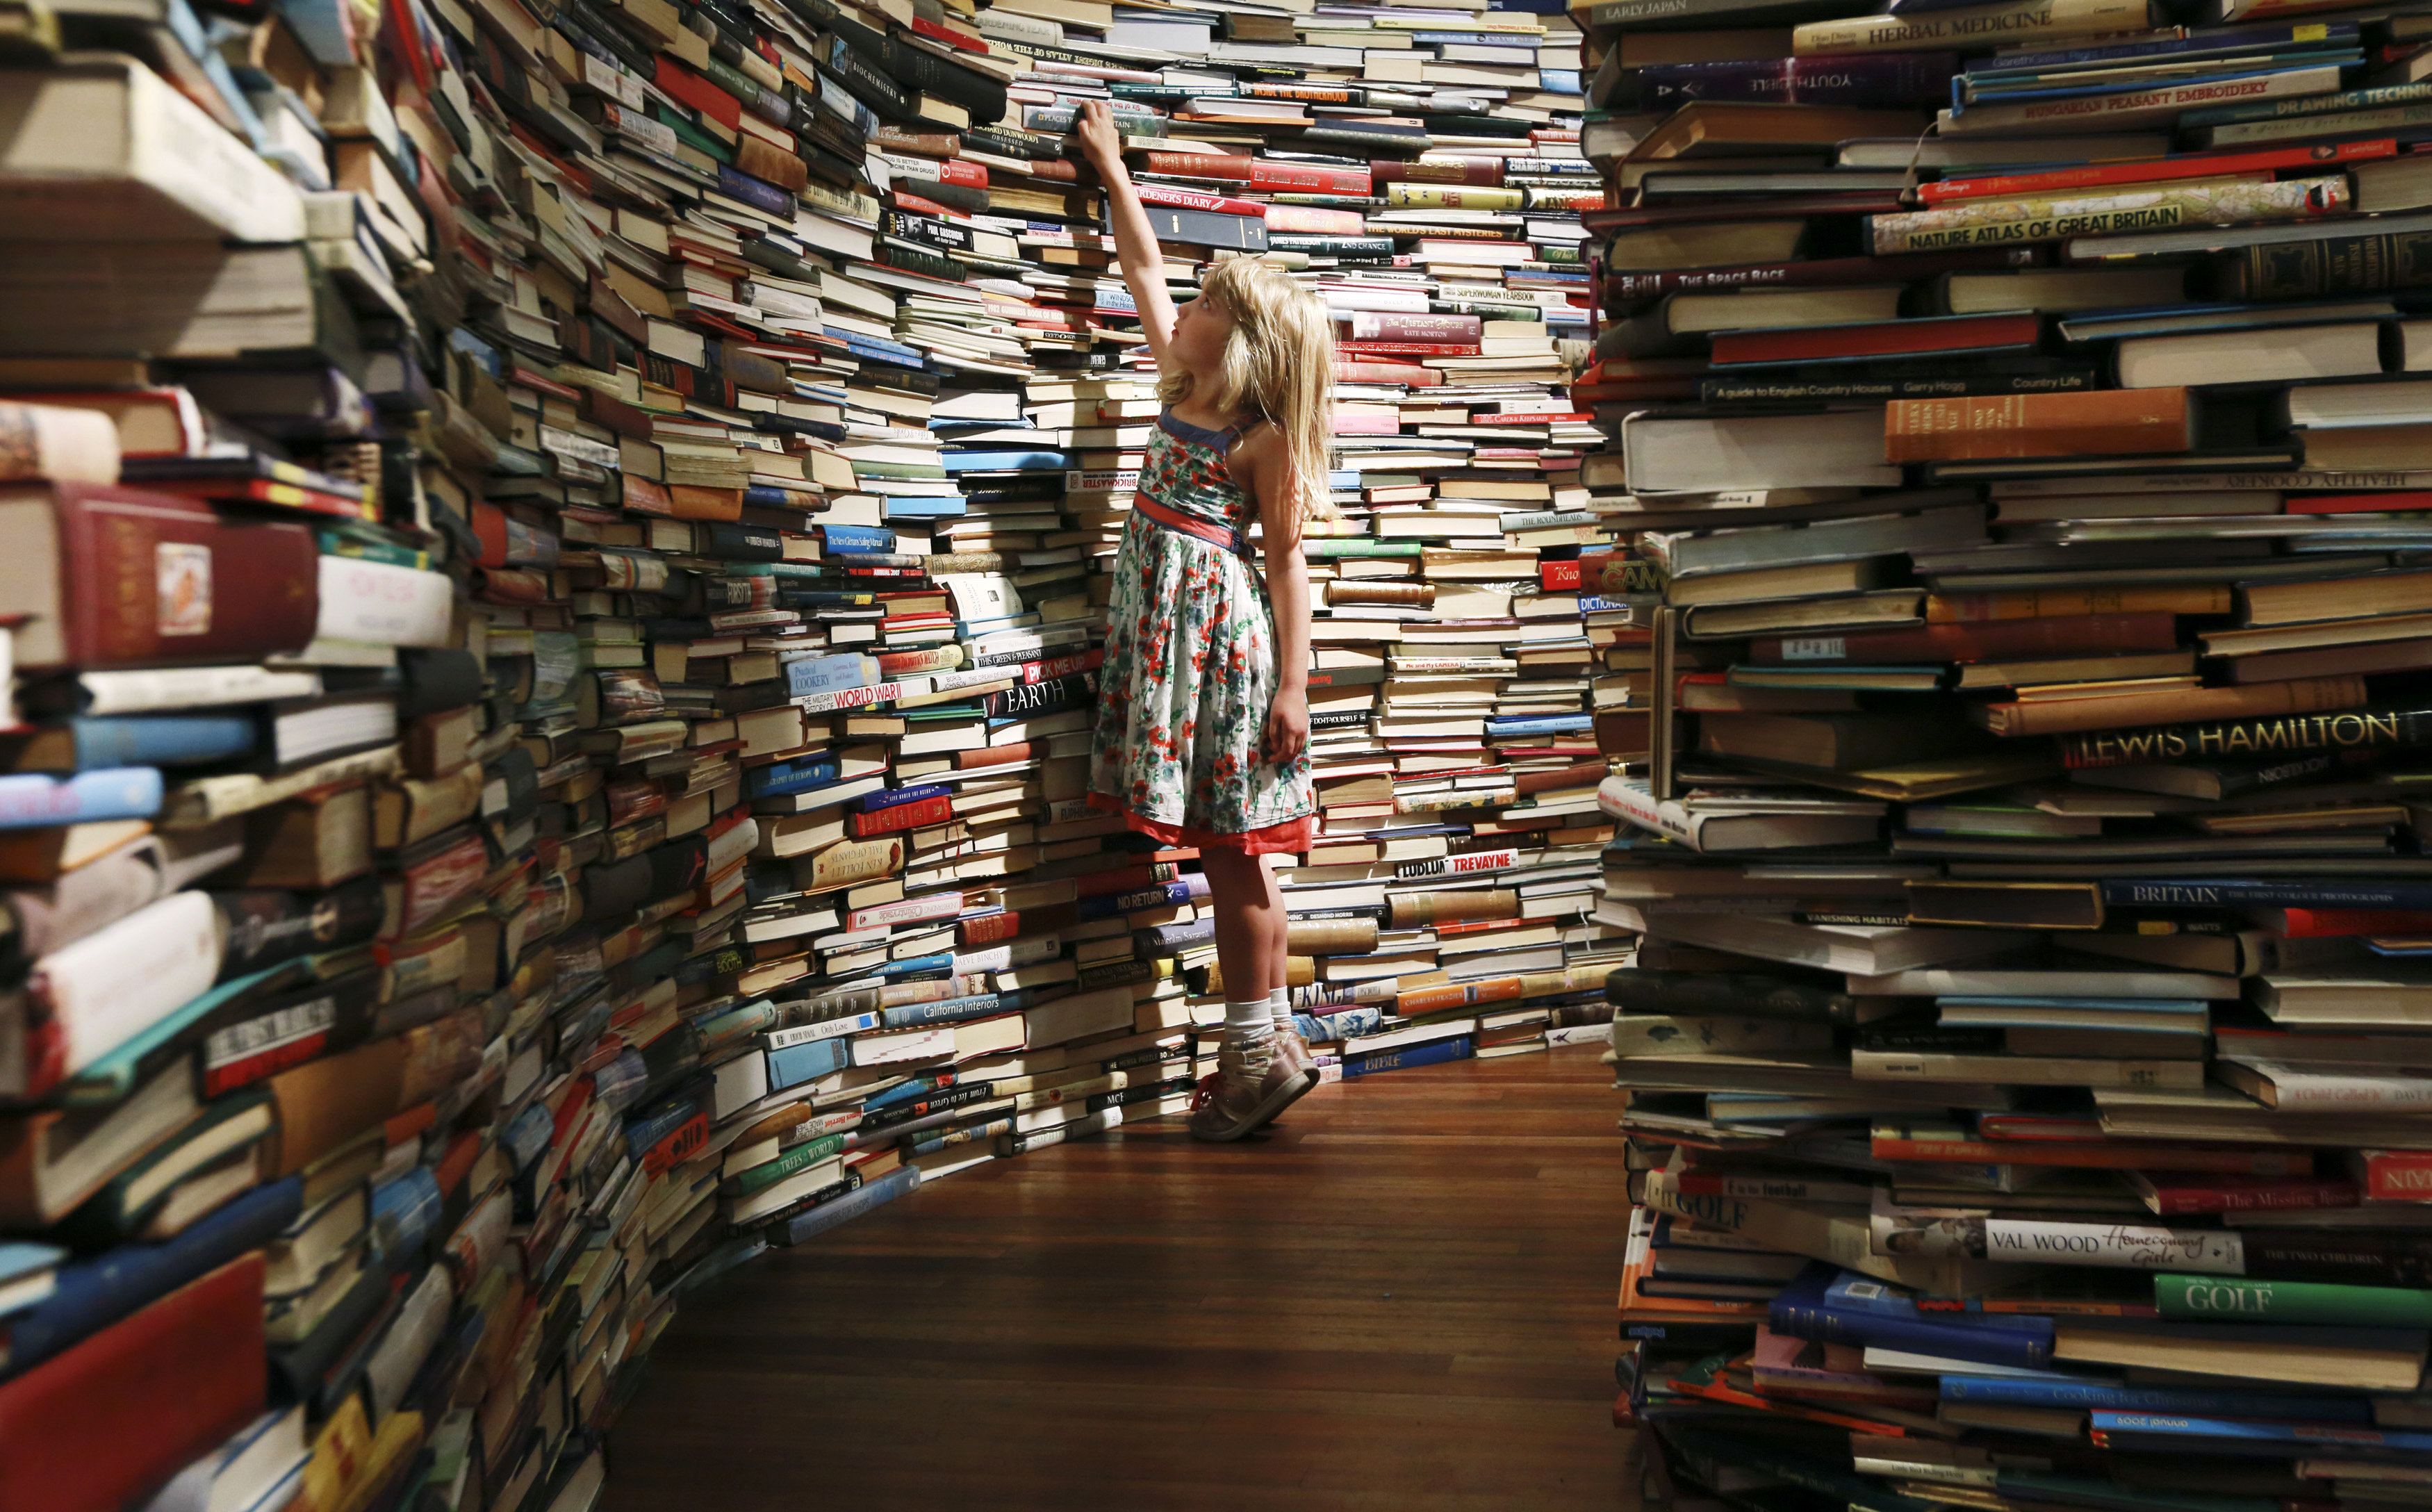 a girl in a labyrinth of books